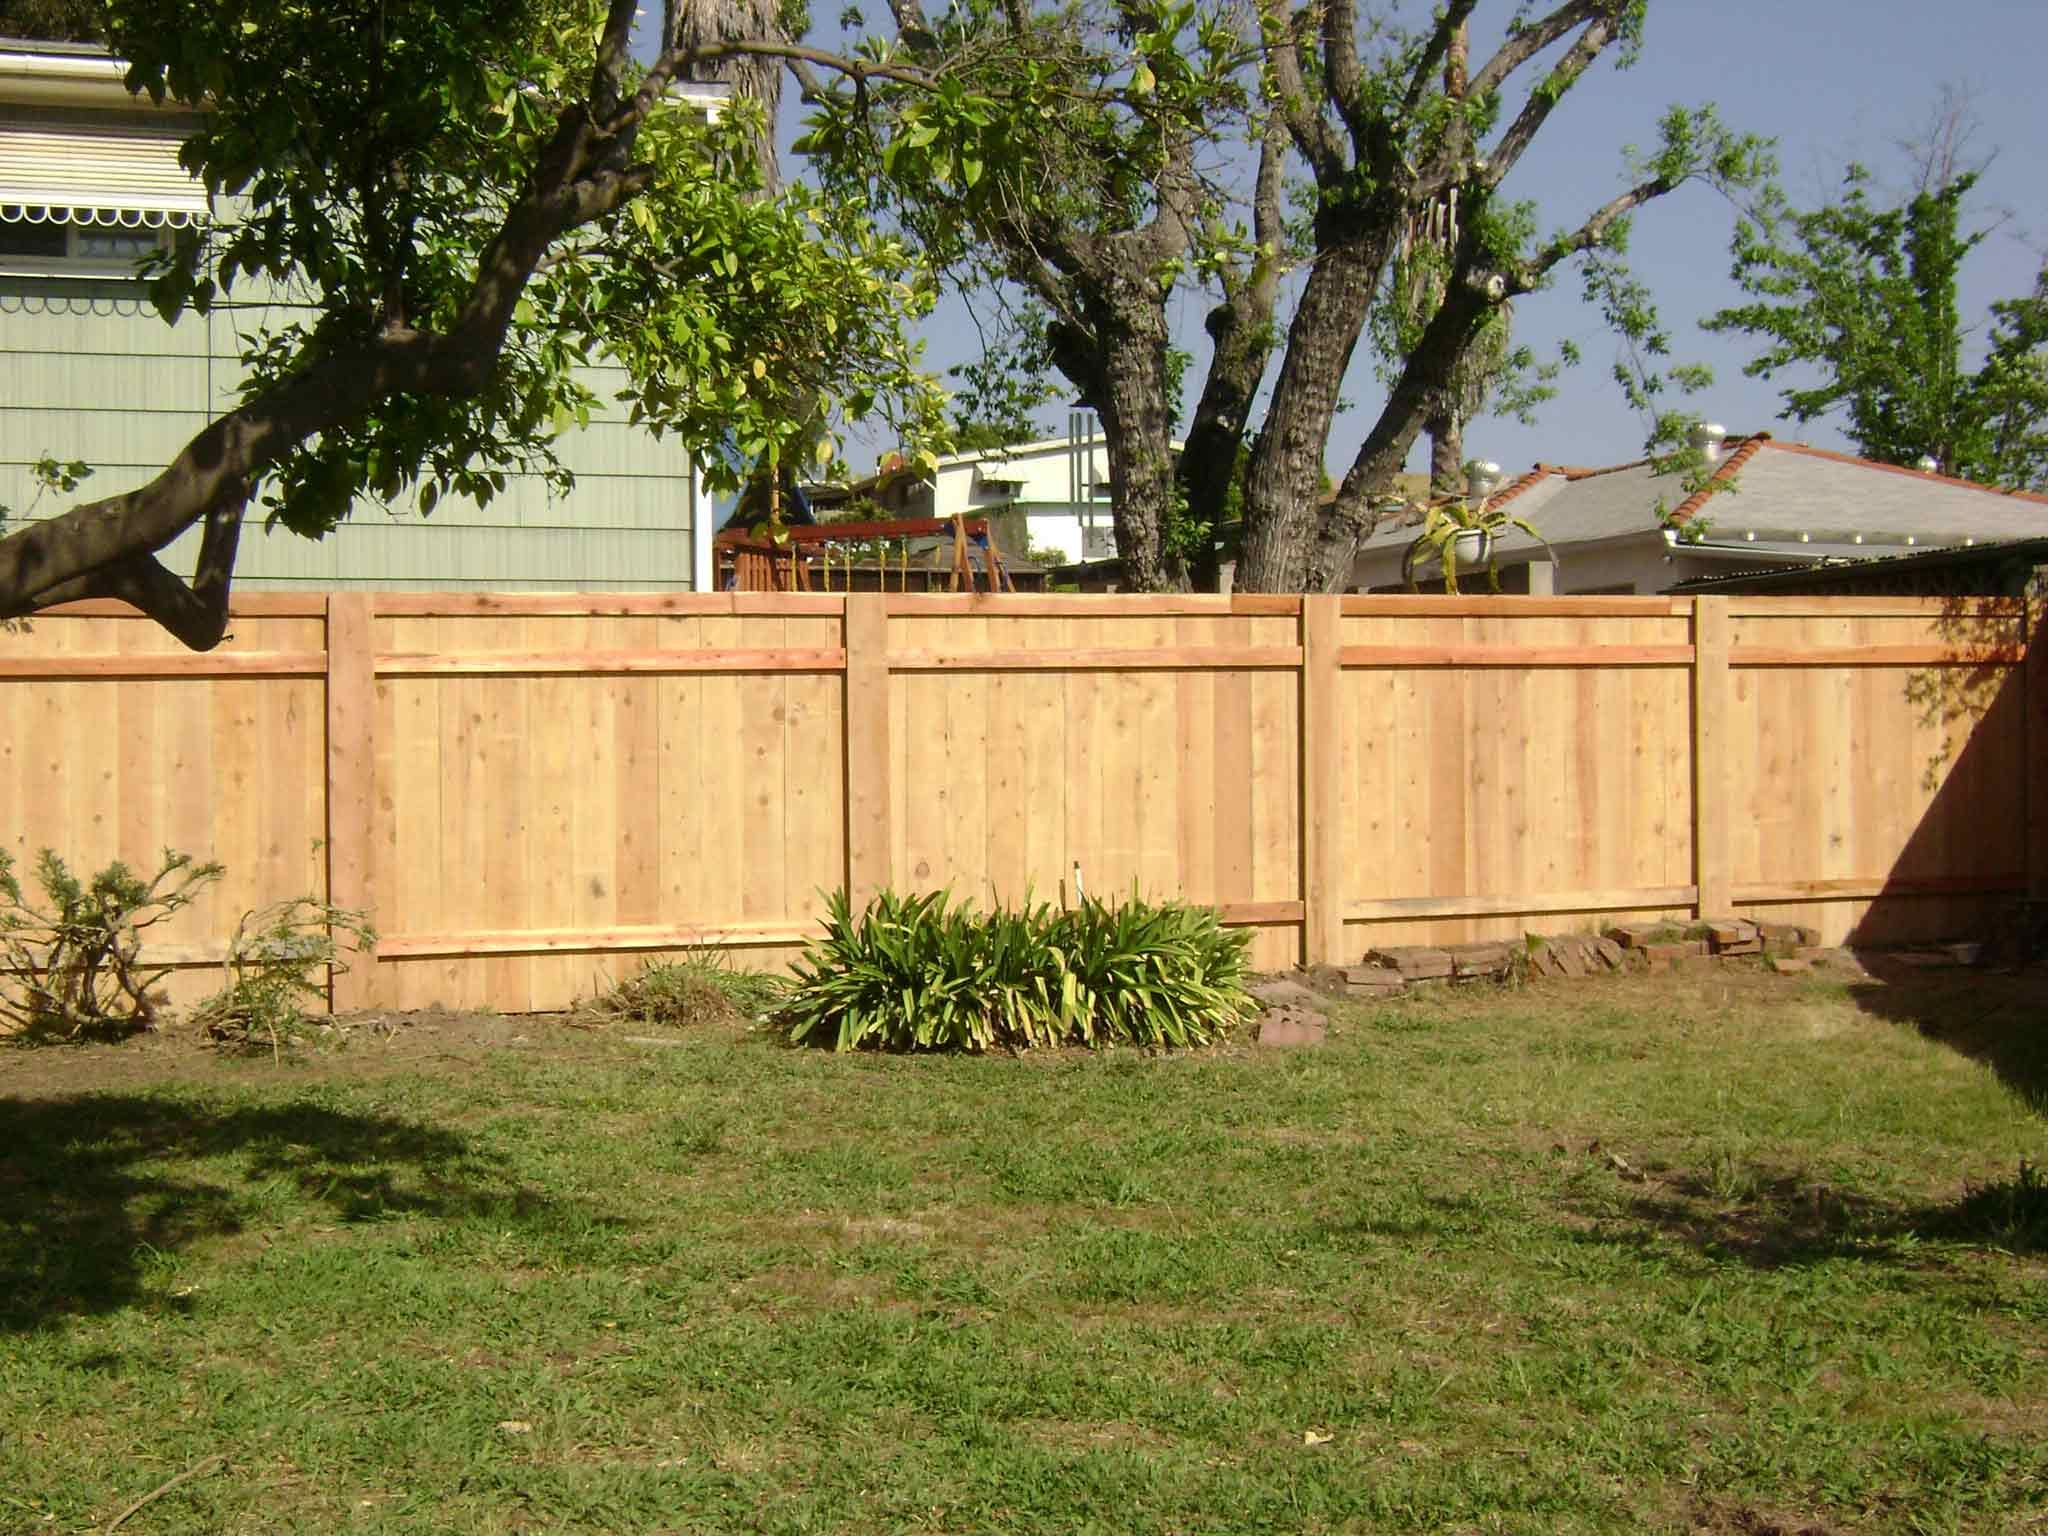 11 Genius Ideas How to Make Types Of Wood Fences For ...